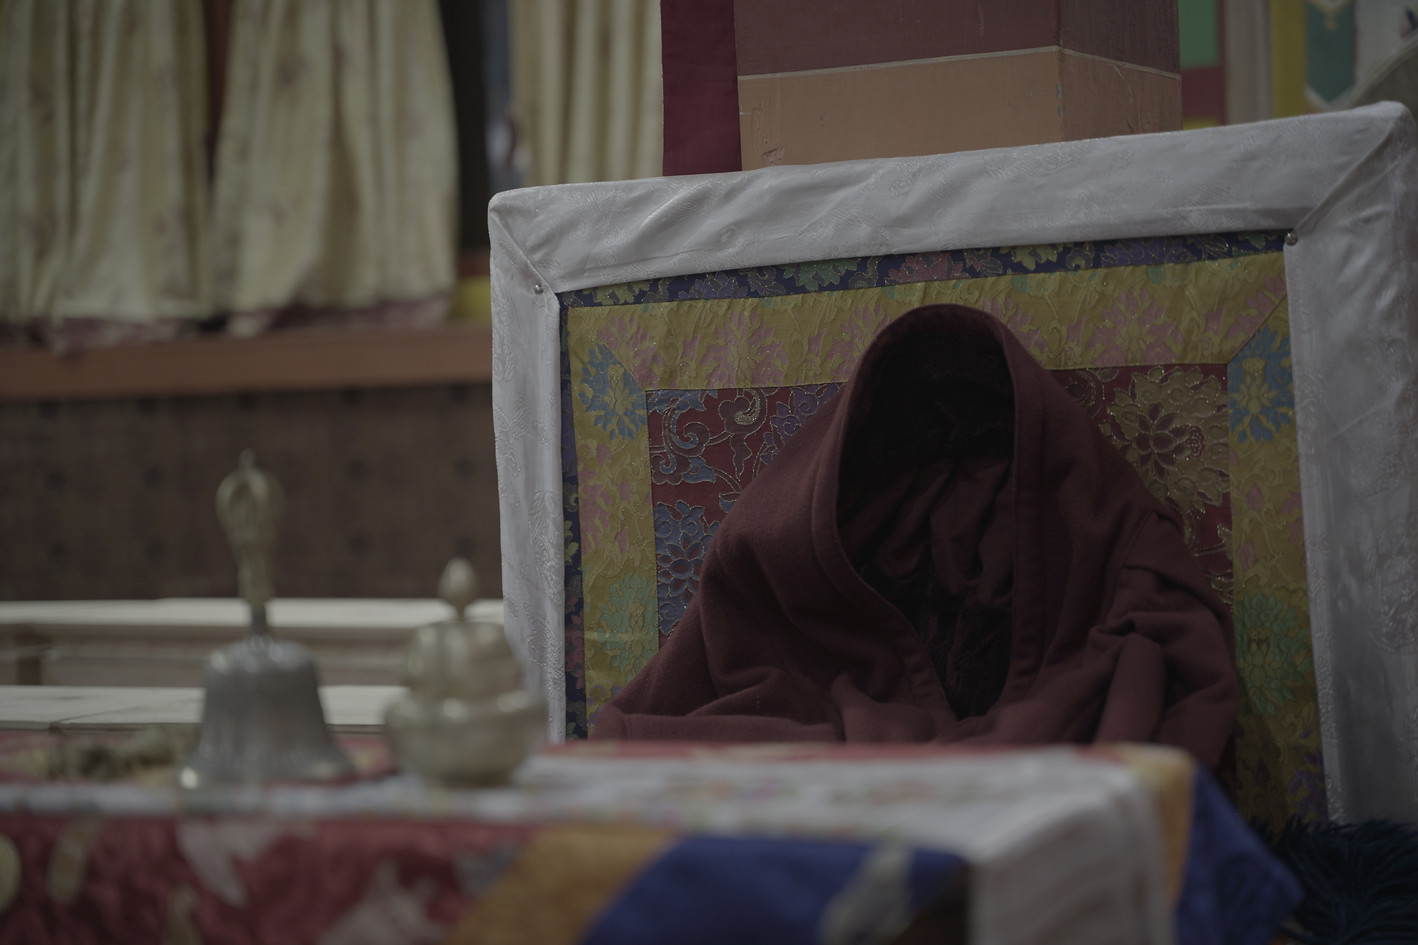 We interviewed the head monk. And as we were chatting, behind him remained this: The frozen robe of the head monk stuck in a sillhouette of his body.